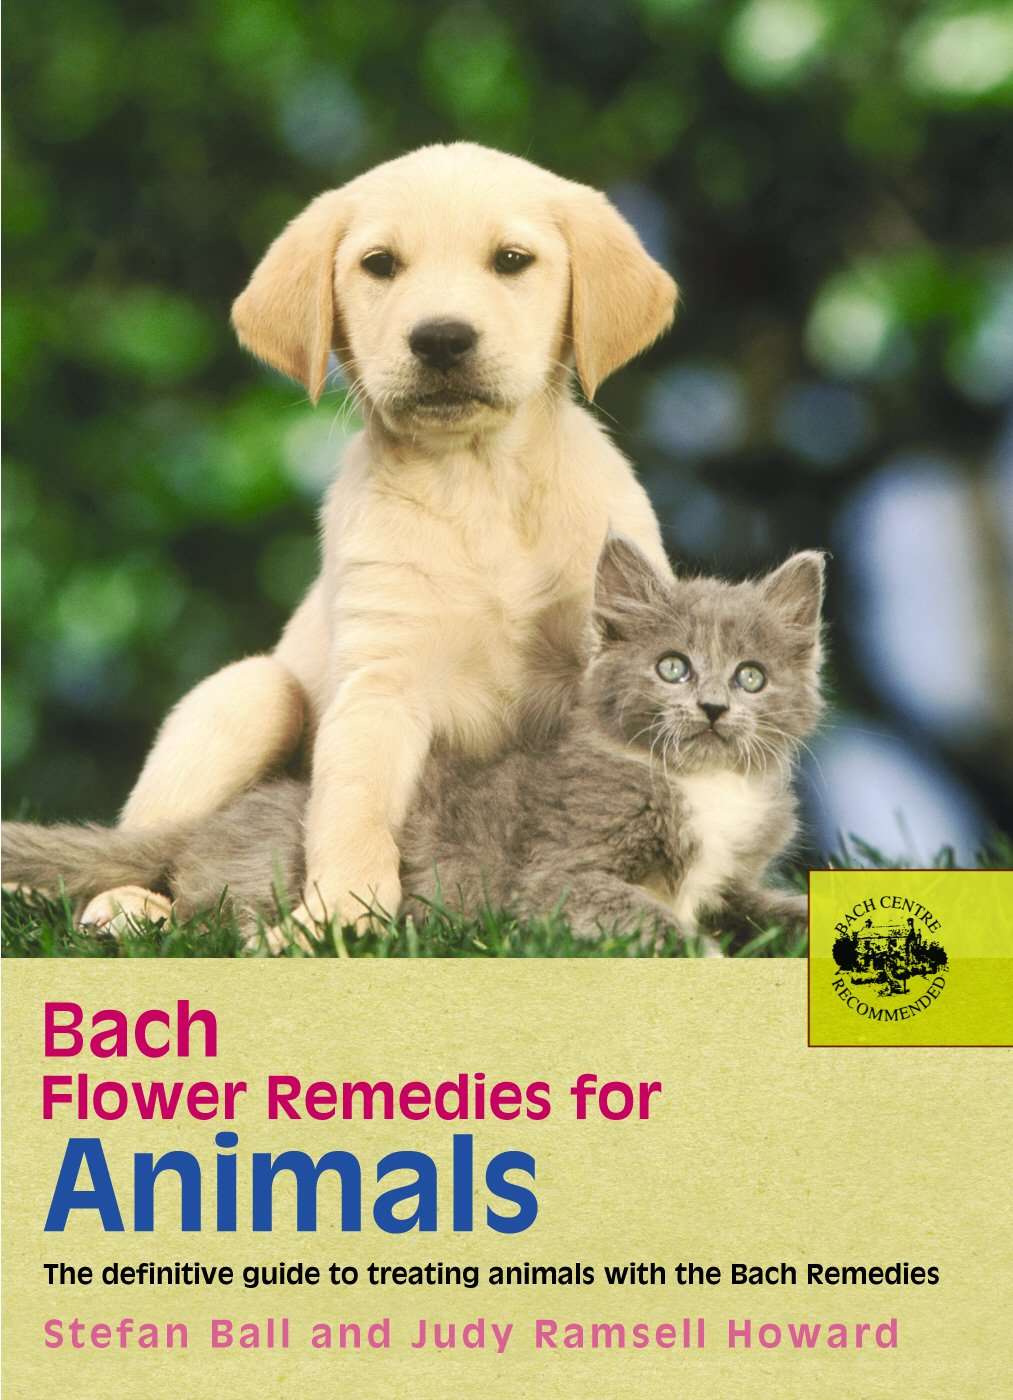 Bach Flower Remedies for Animals: The Definitive Guide to Treating Animals with the Bach Remedies PDF